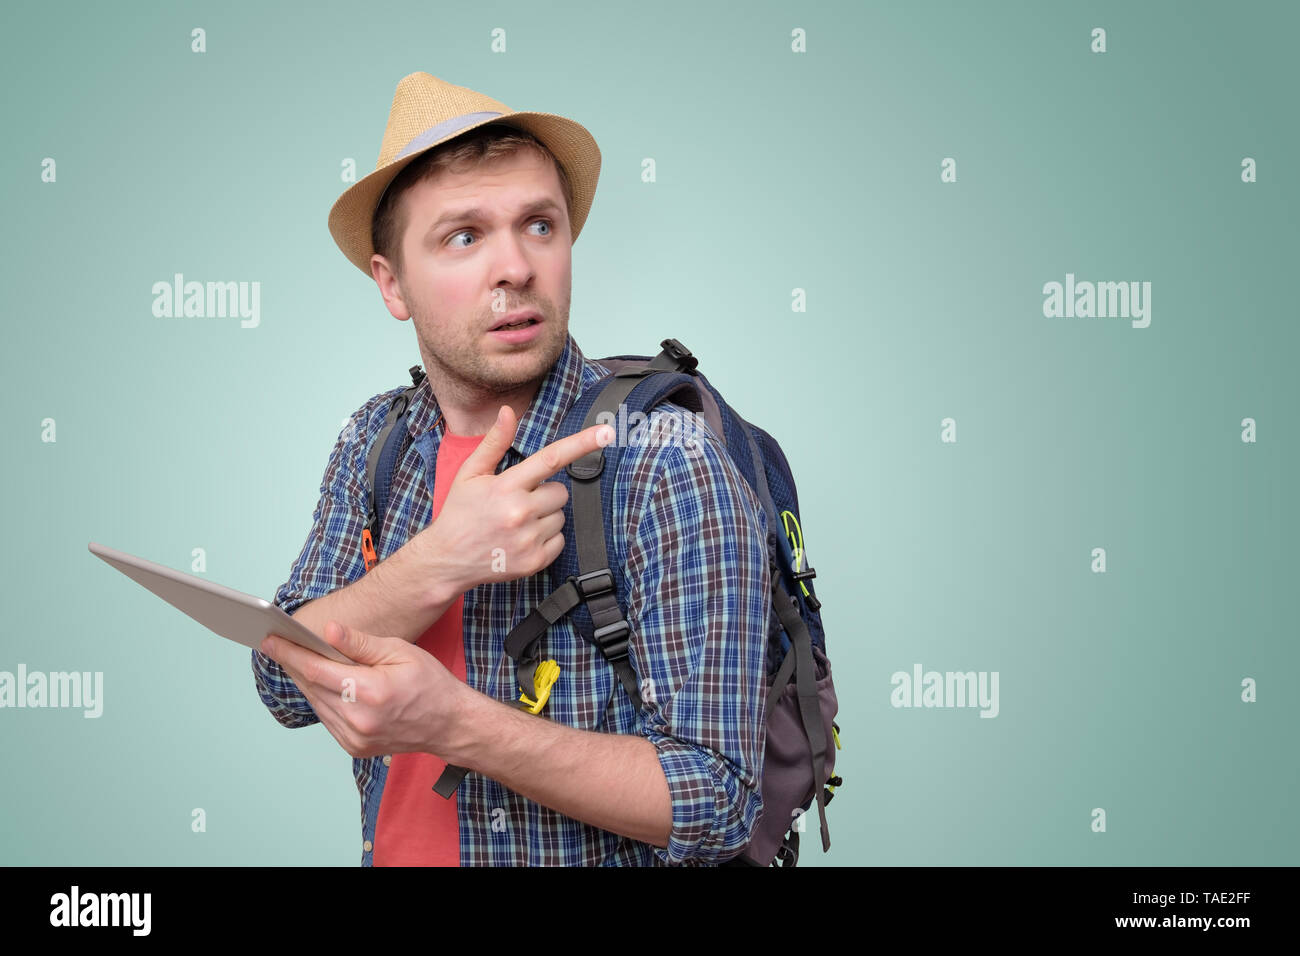 Man lost and looking for direction with tablet - Stock Image